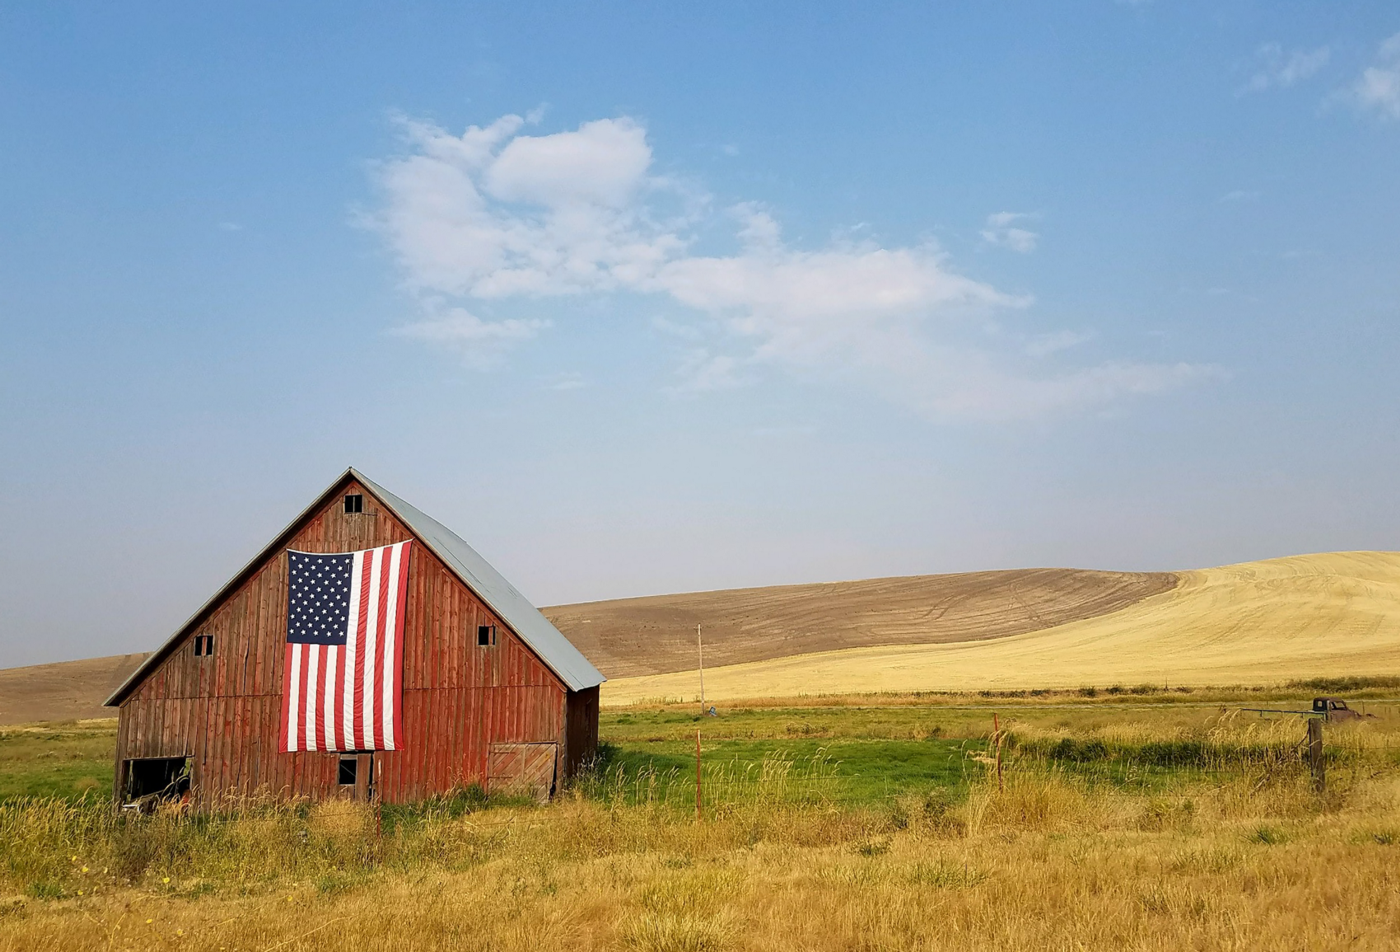 Red barn with American flag in an open field